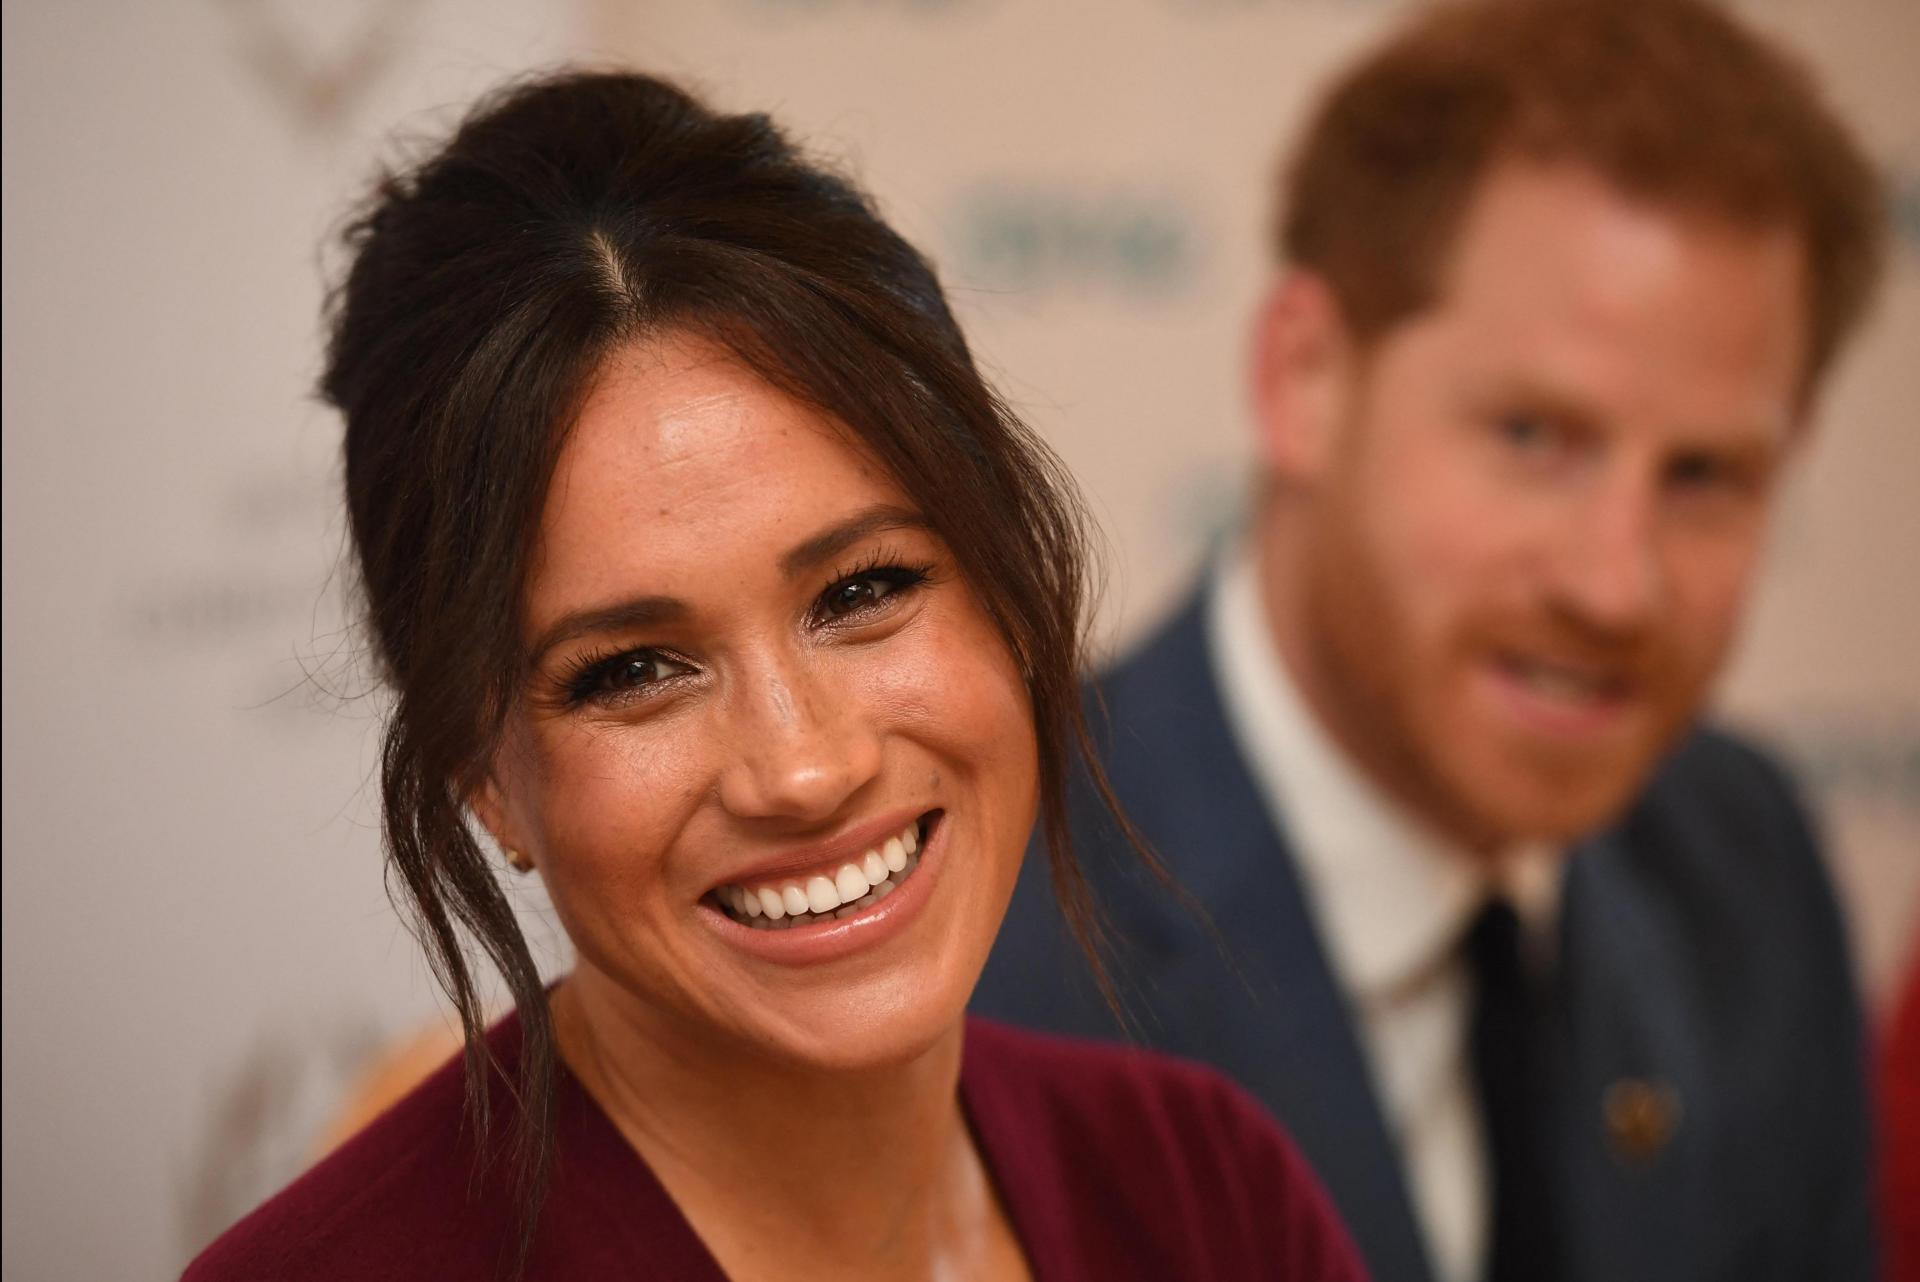 Markle has no plans to return to acting. Photo: Jeremy Selwyn/Pool/AFP